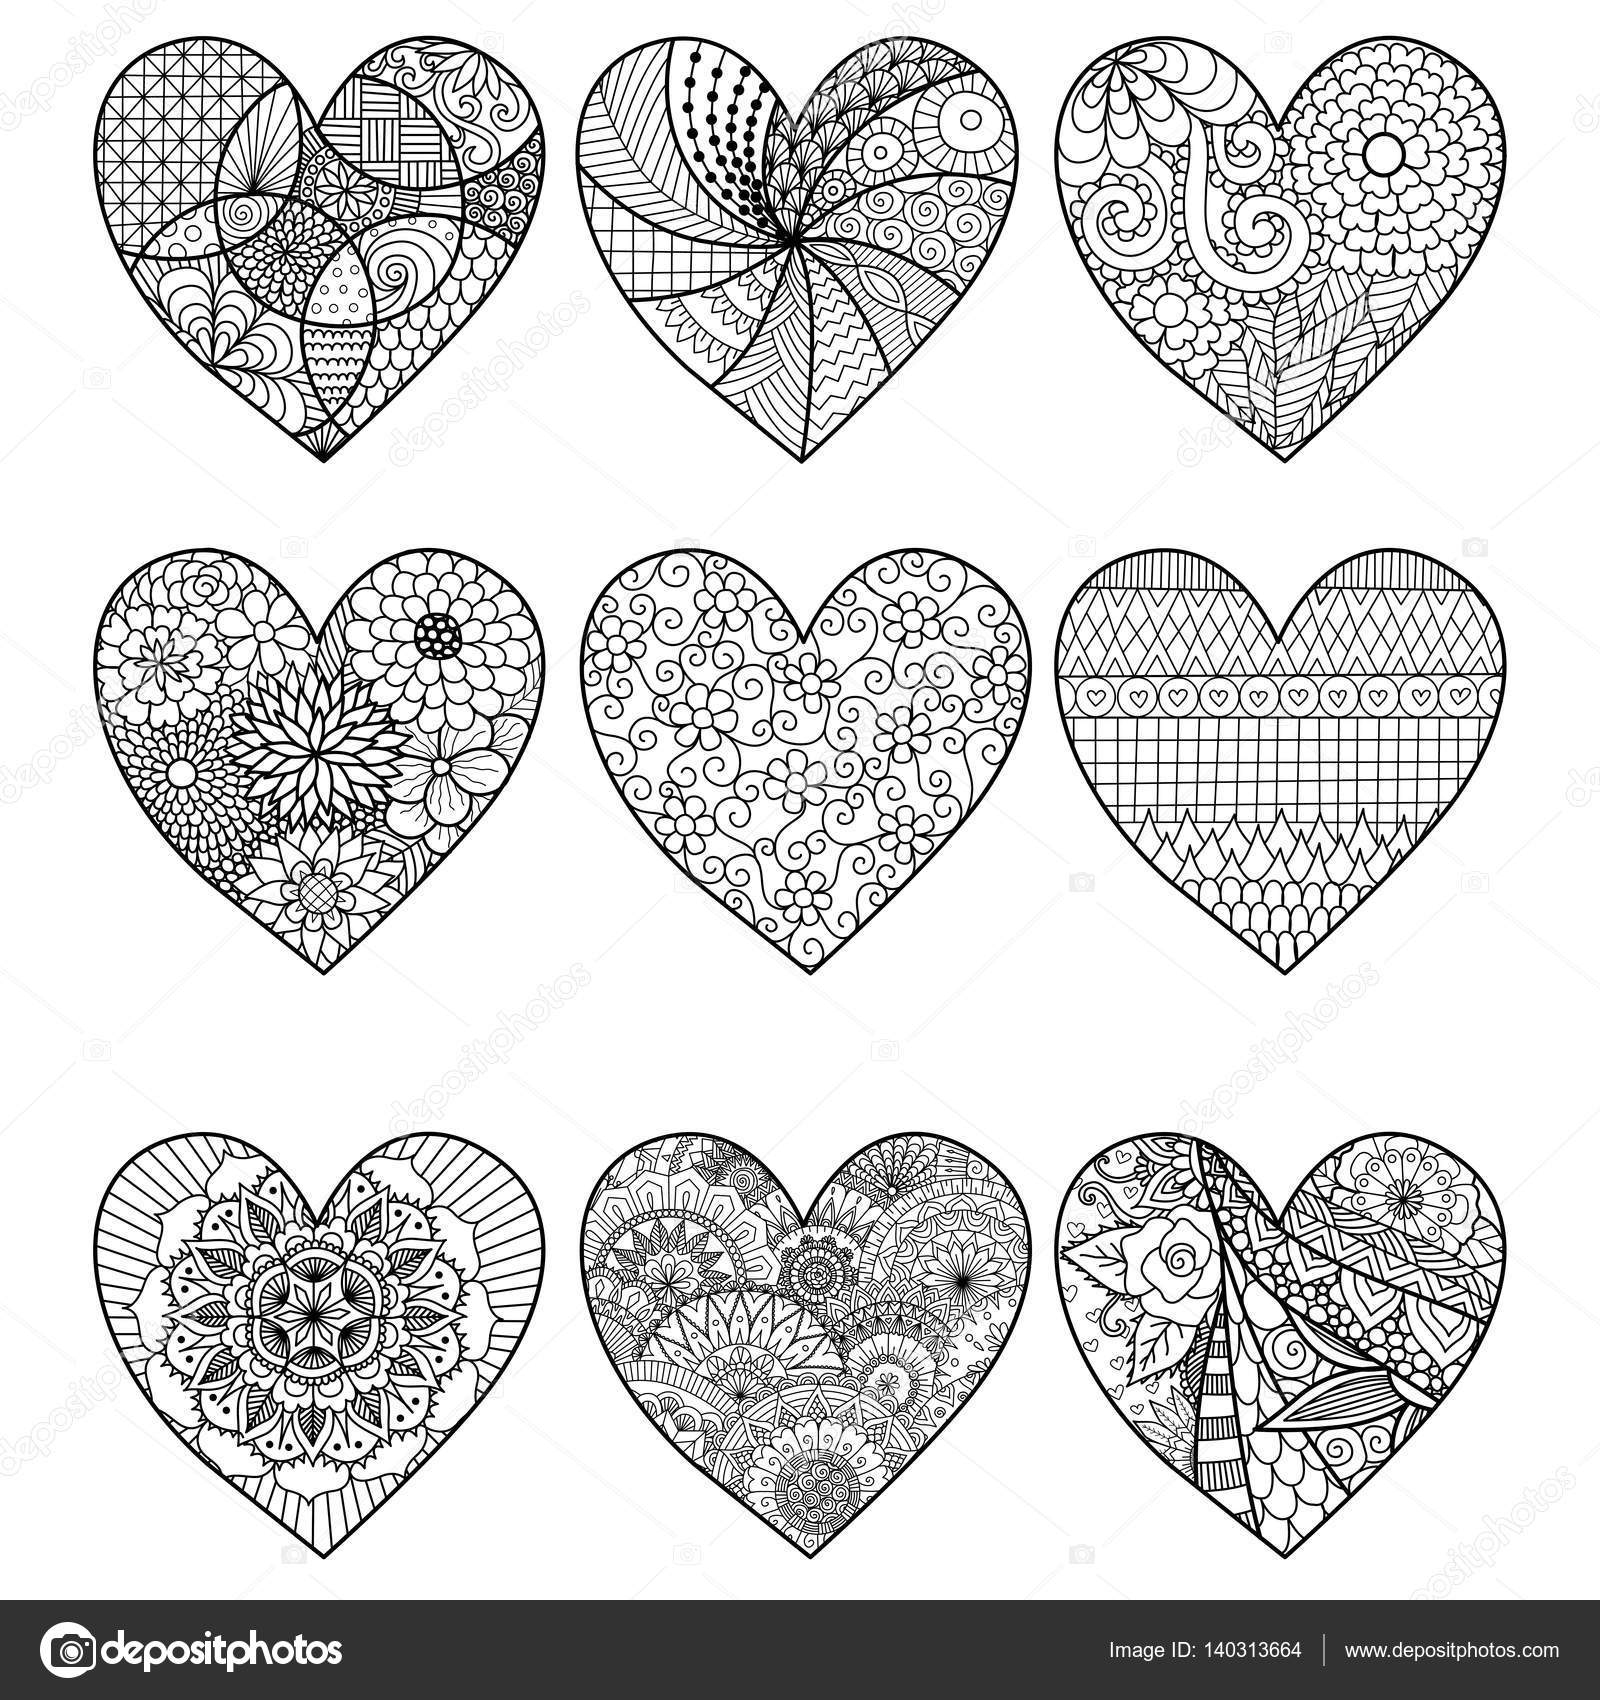 Nine Zendoodle Hearts For Adult Coloring Book Pages Stock Vector C Somjaicindy Gmail Com 140313664